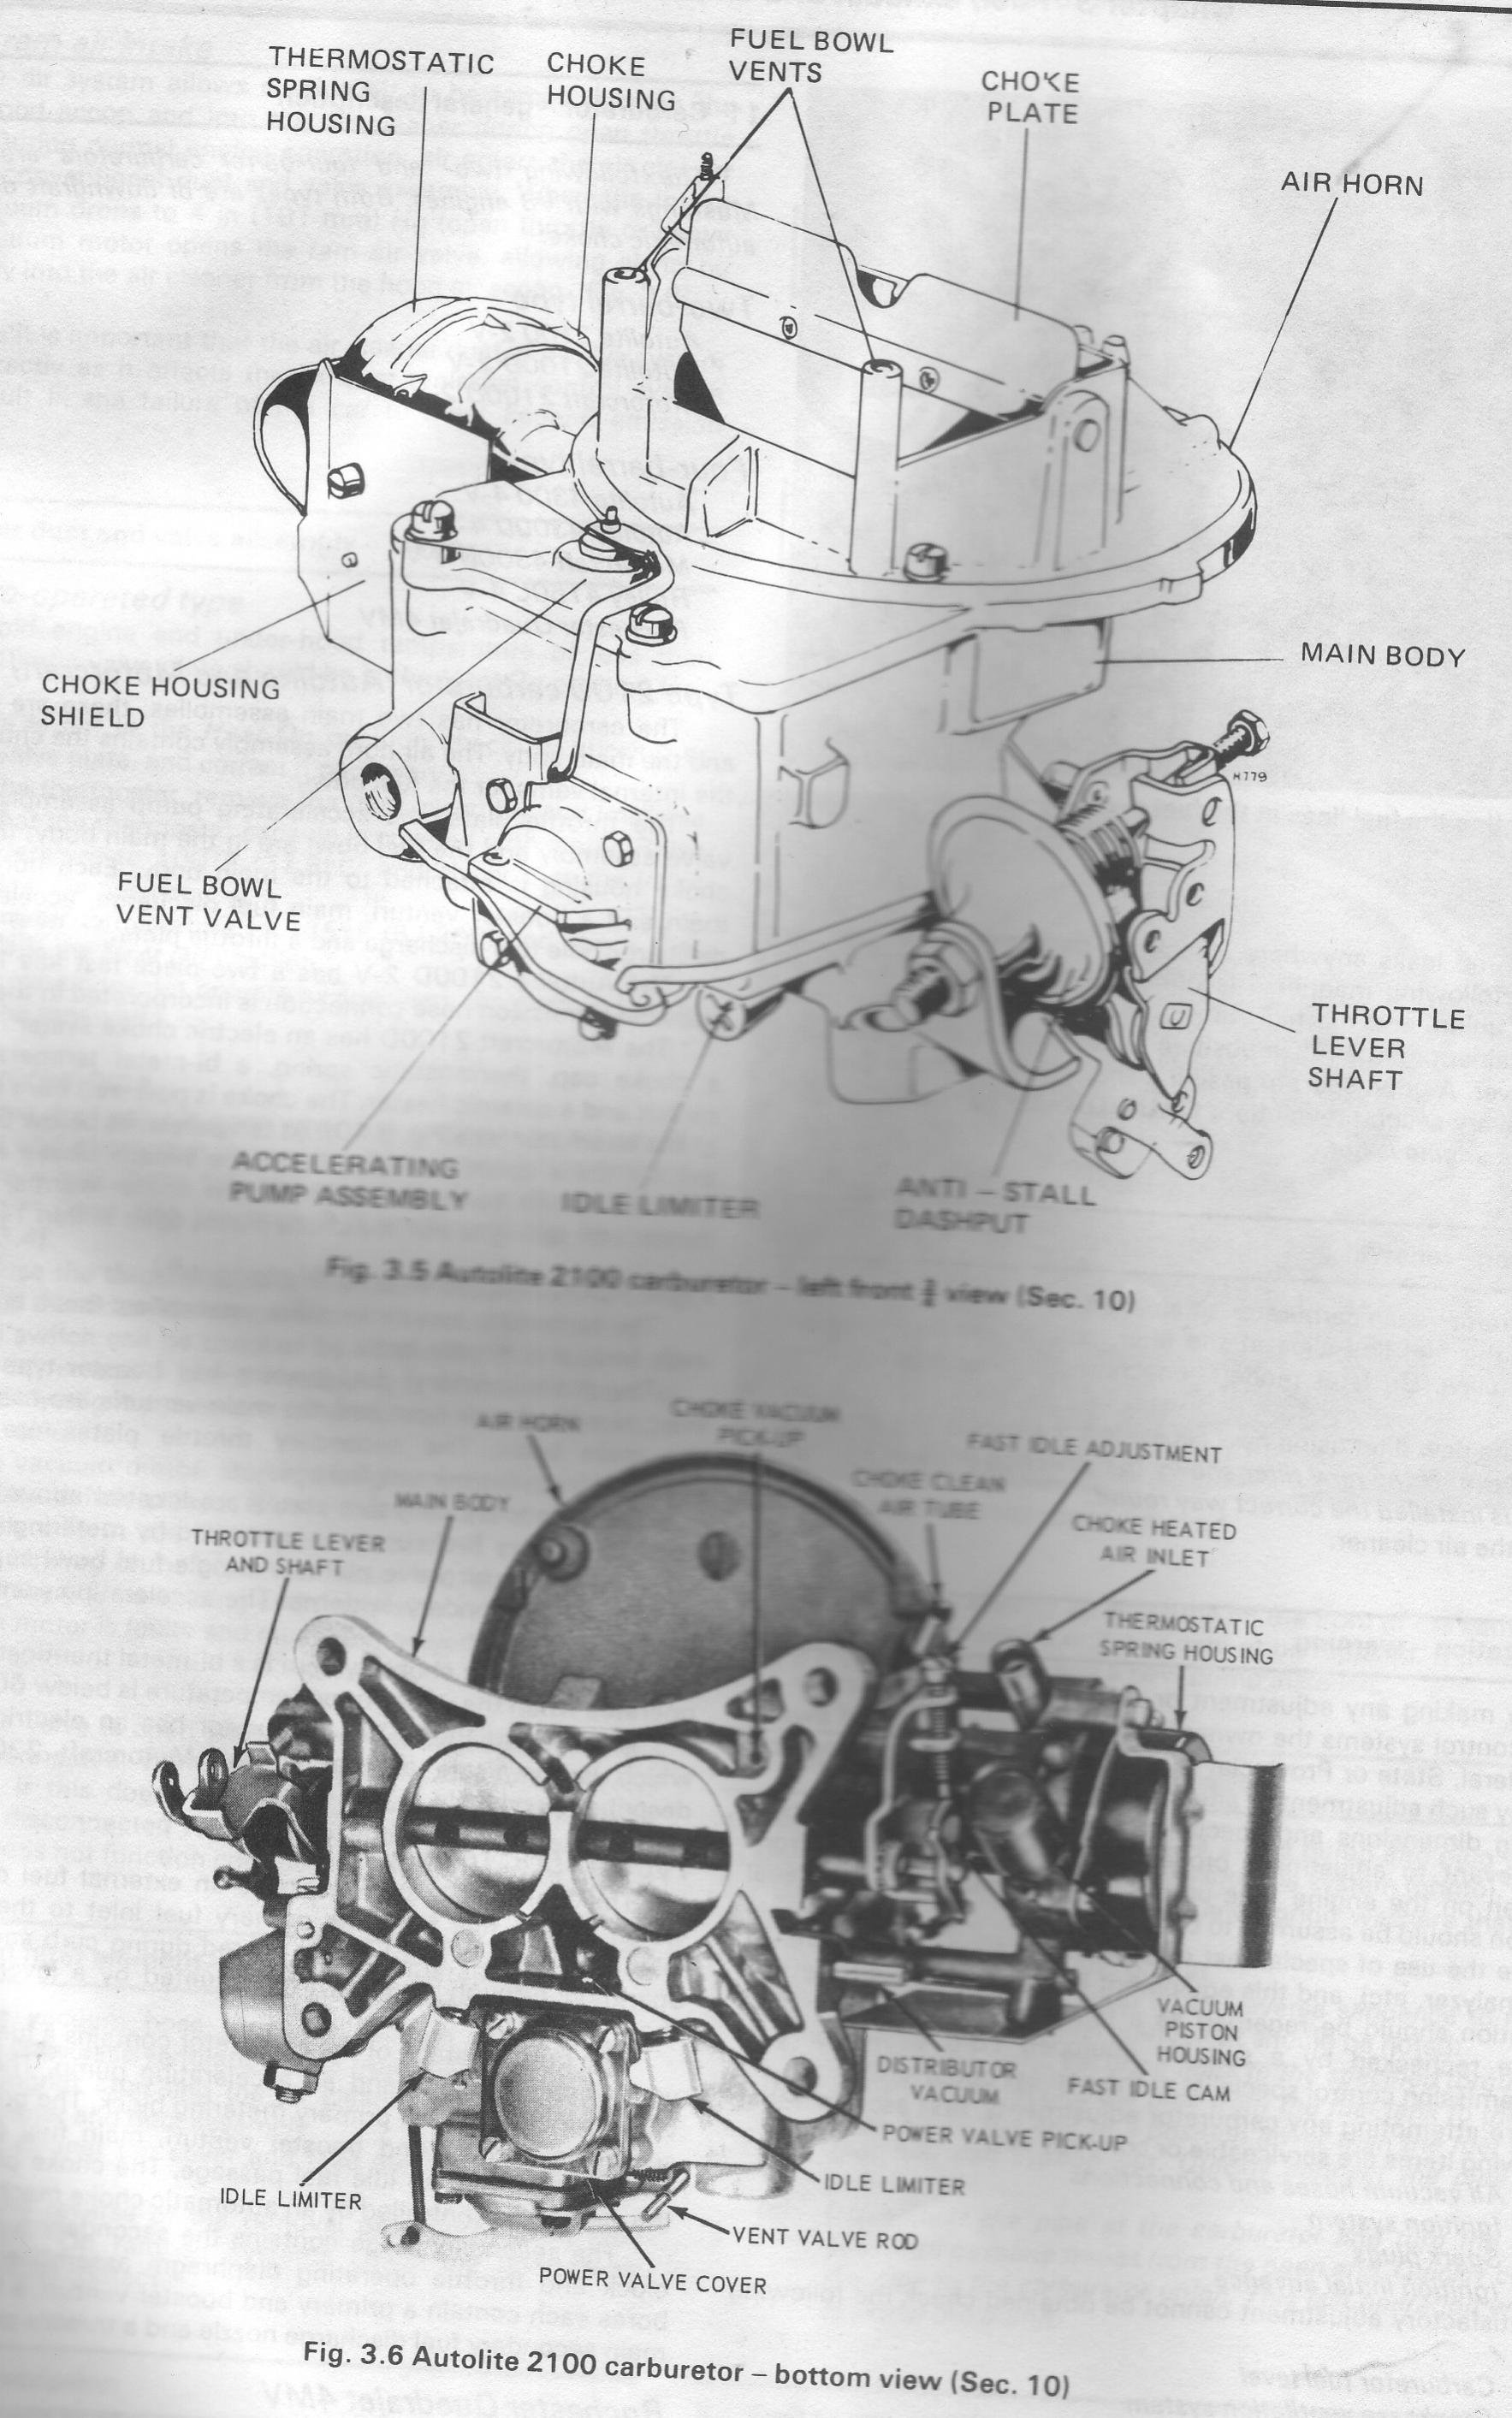 63152d1236399041 2100 carb diagram motorcraft 2 2100 carb diagram page 2 ford mustang forum Motorcraft 2150 Carburetor Identification at edmiracle.co